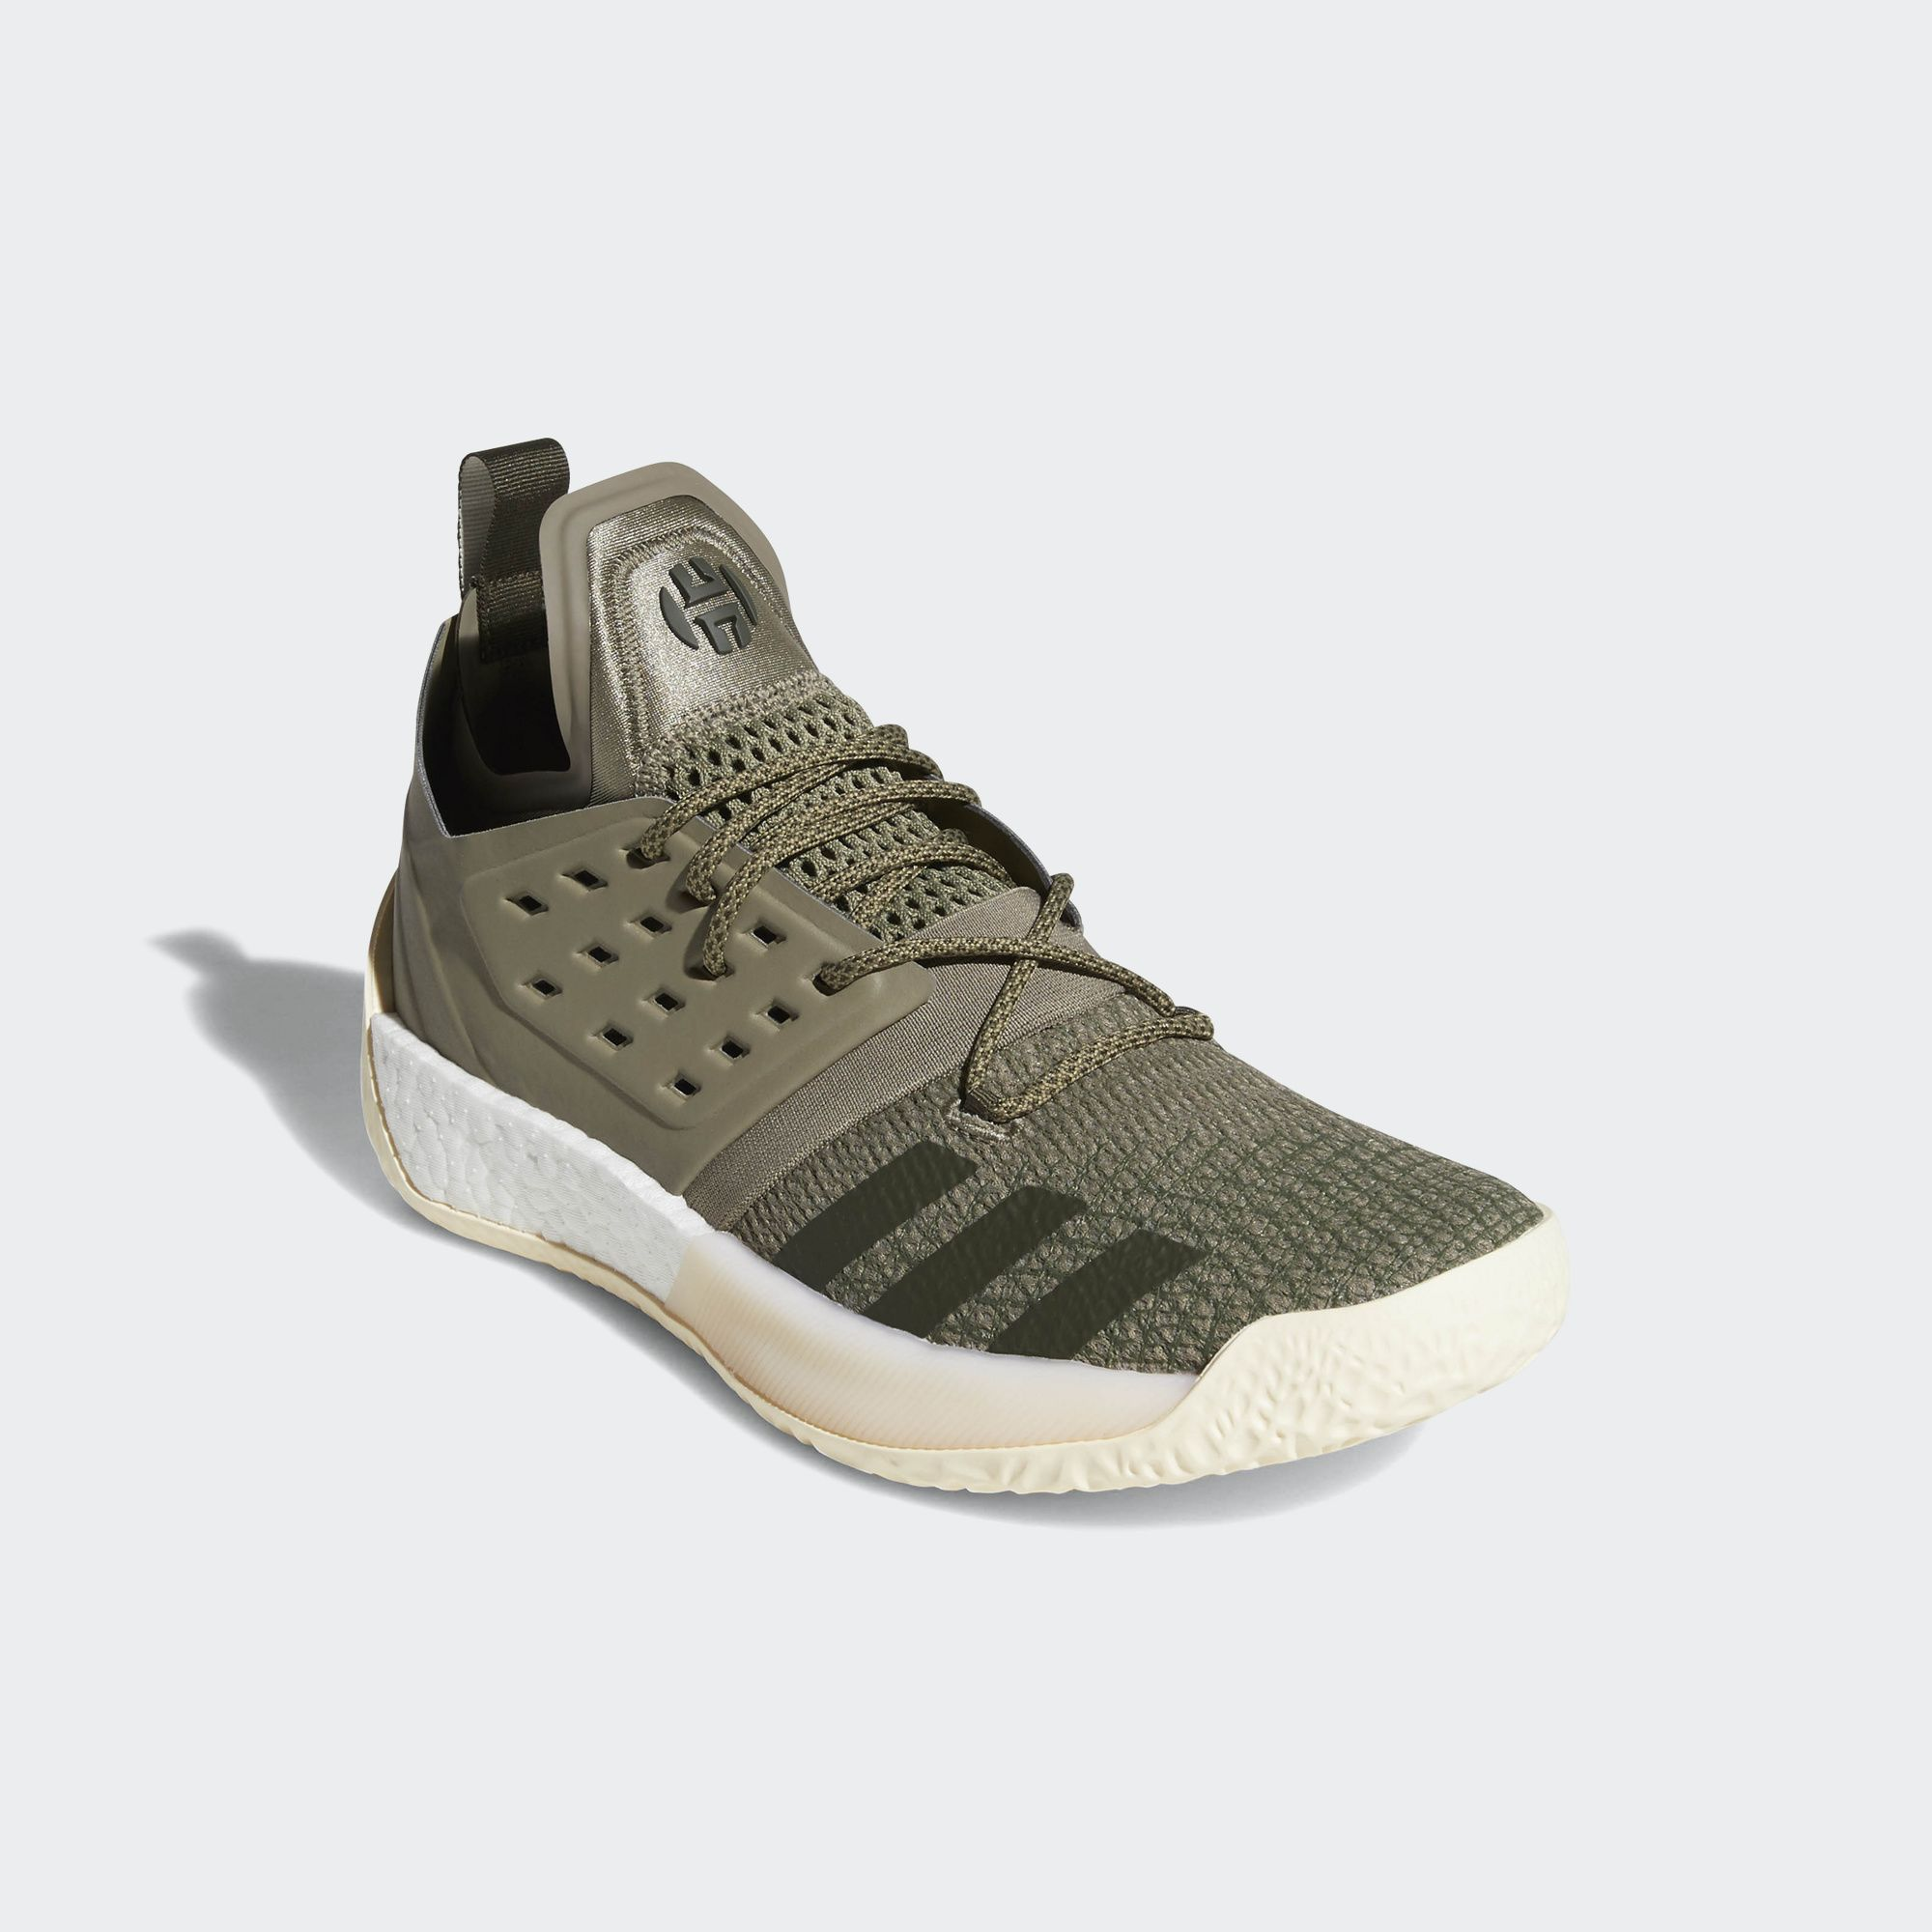 0c21dc10fa31 ... new zealand adidas harden vol 2 trace cargo release date 1 91354 94334